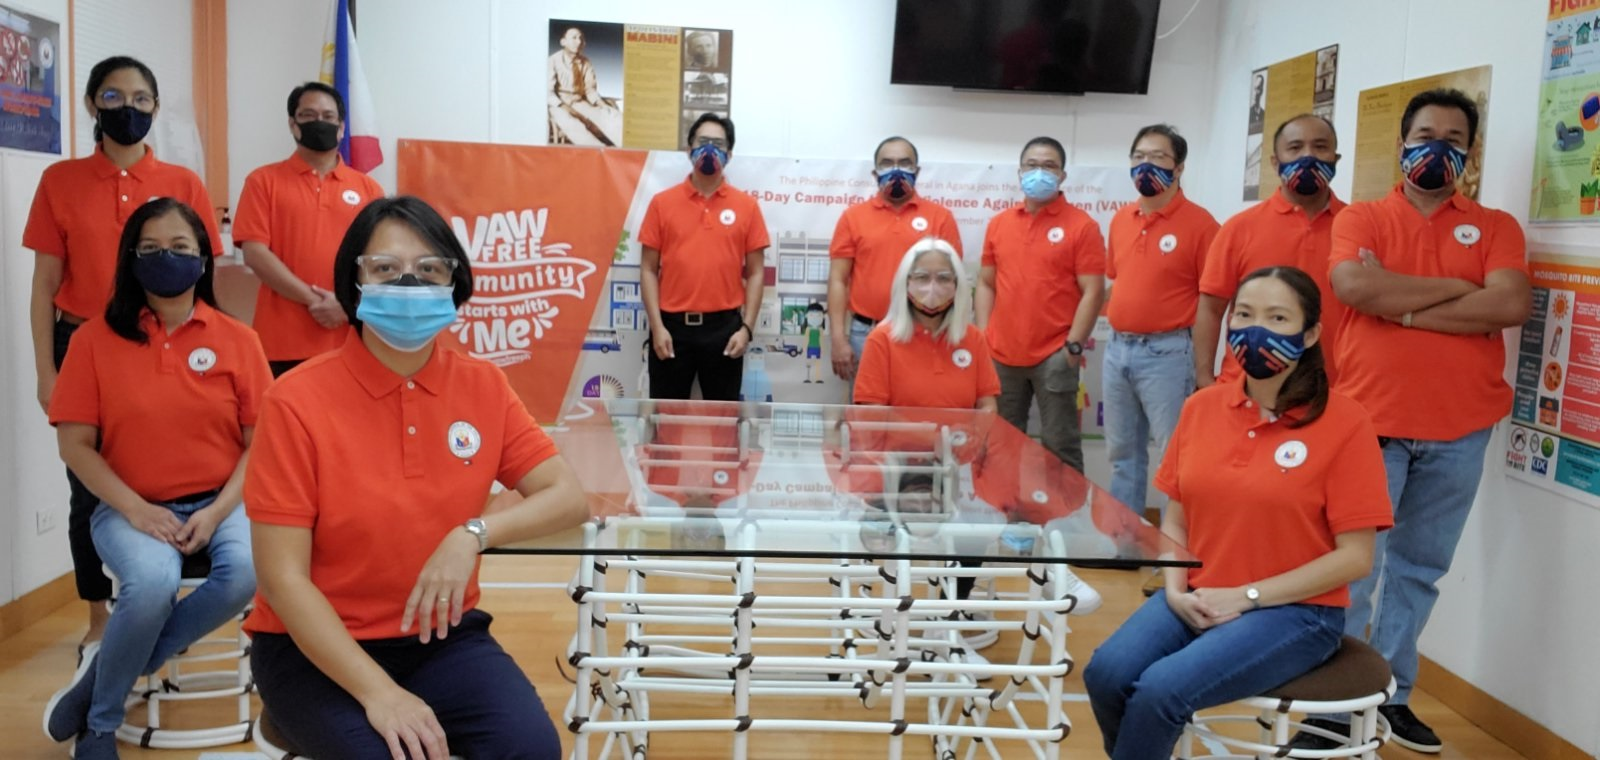 PHL Consulate General in Agana Joins 18-Day Campaign to End Violence Against Women (VAW)